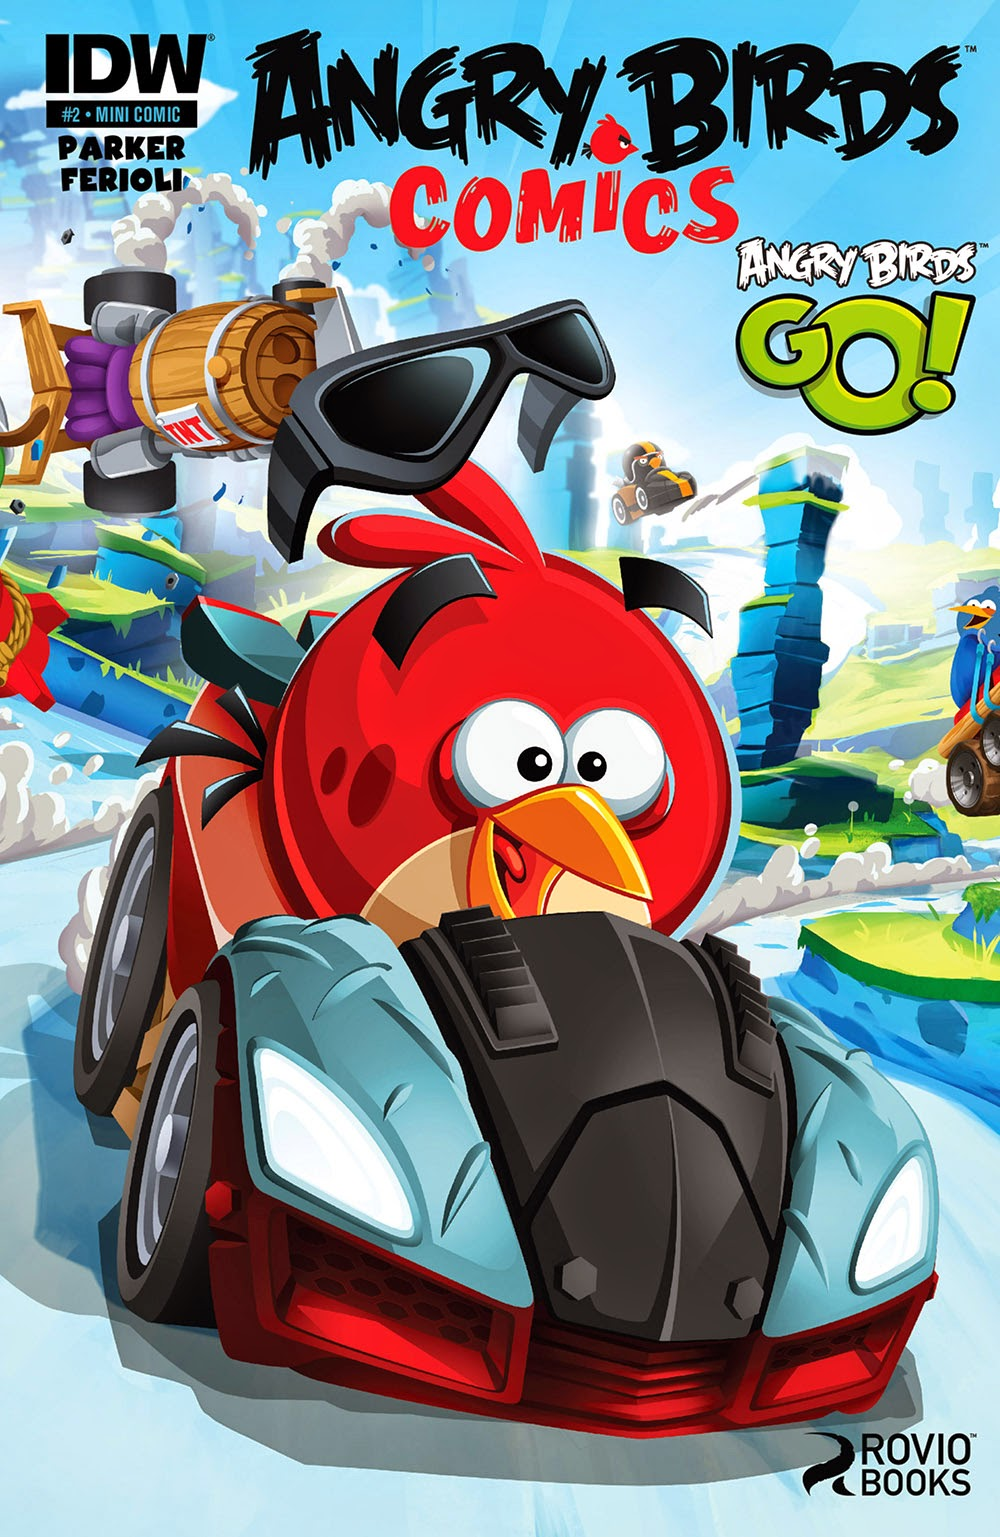 Angry Birds 2 Hack 2018 angry birds comics | viewcomic reading comics online for